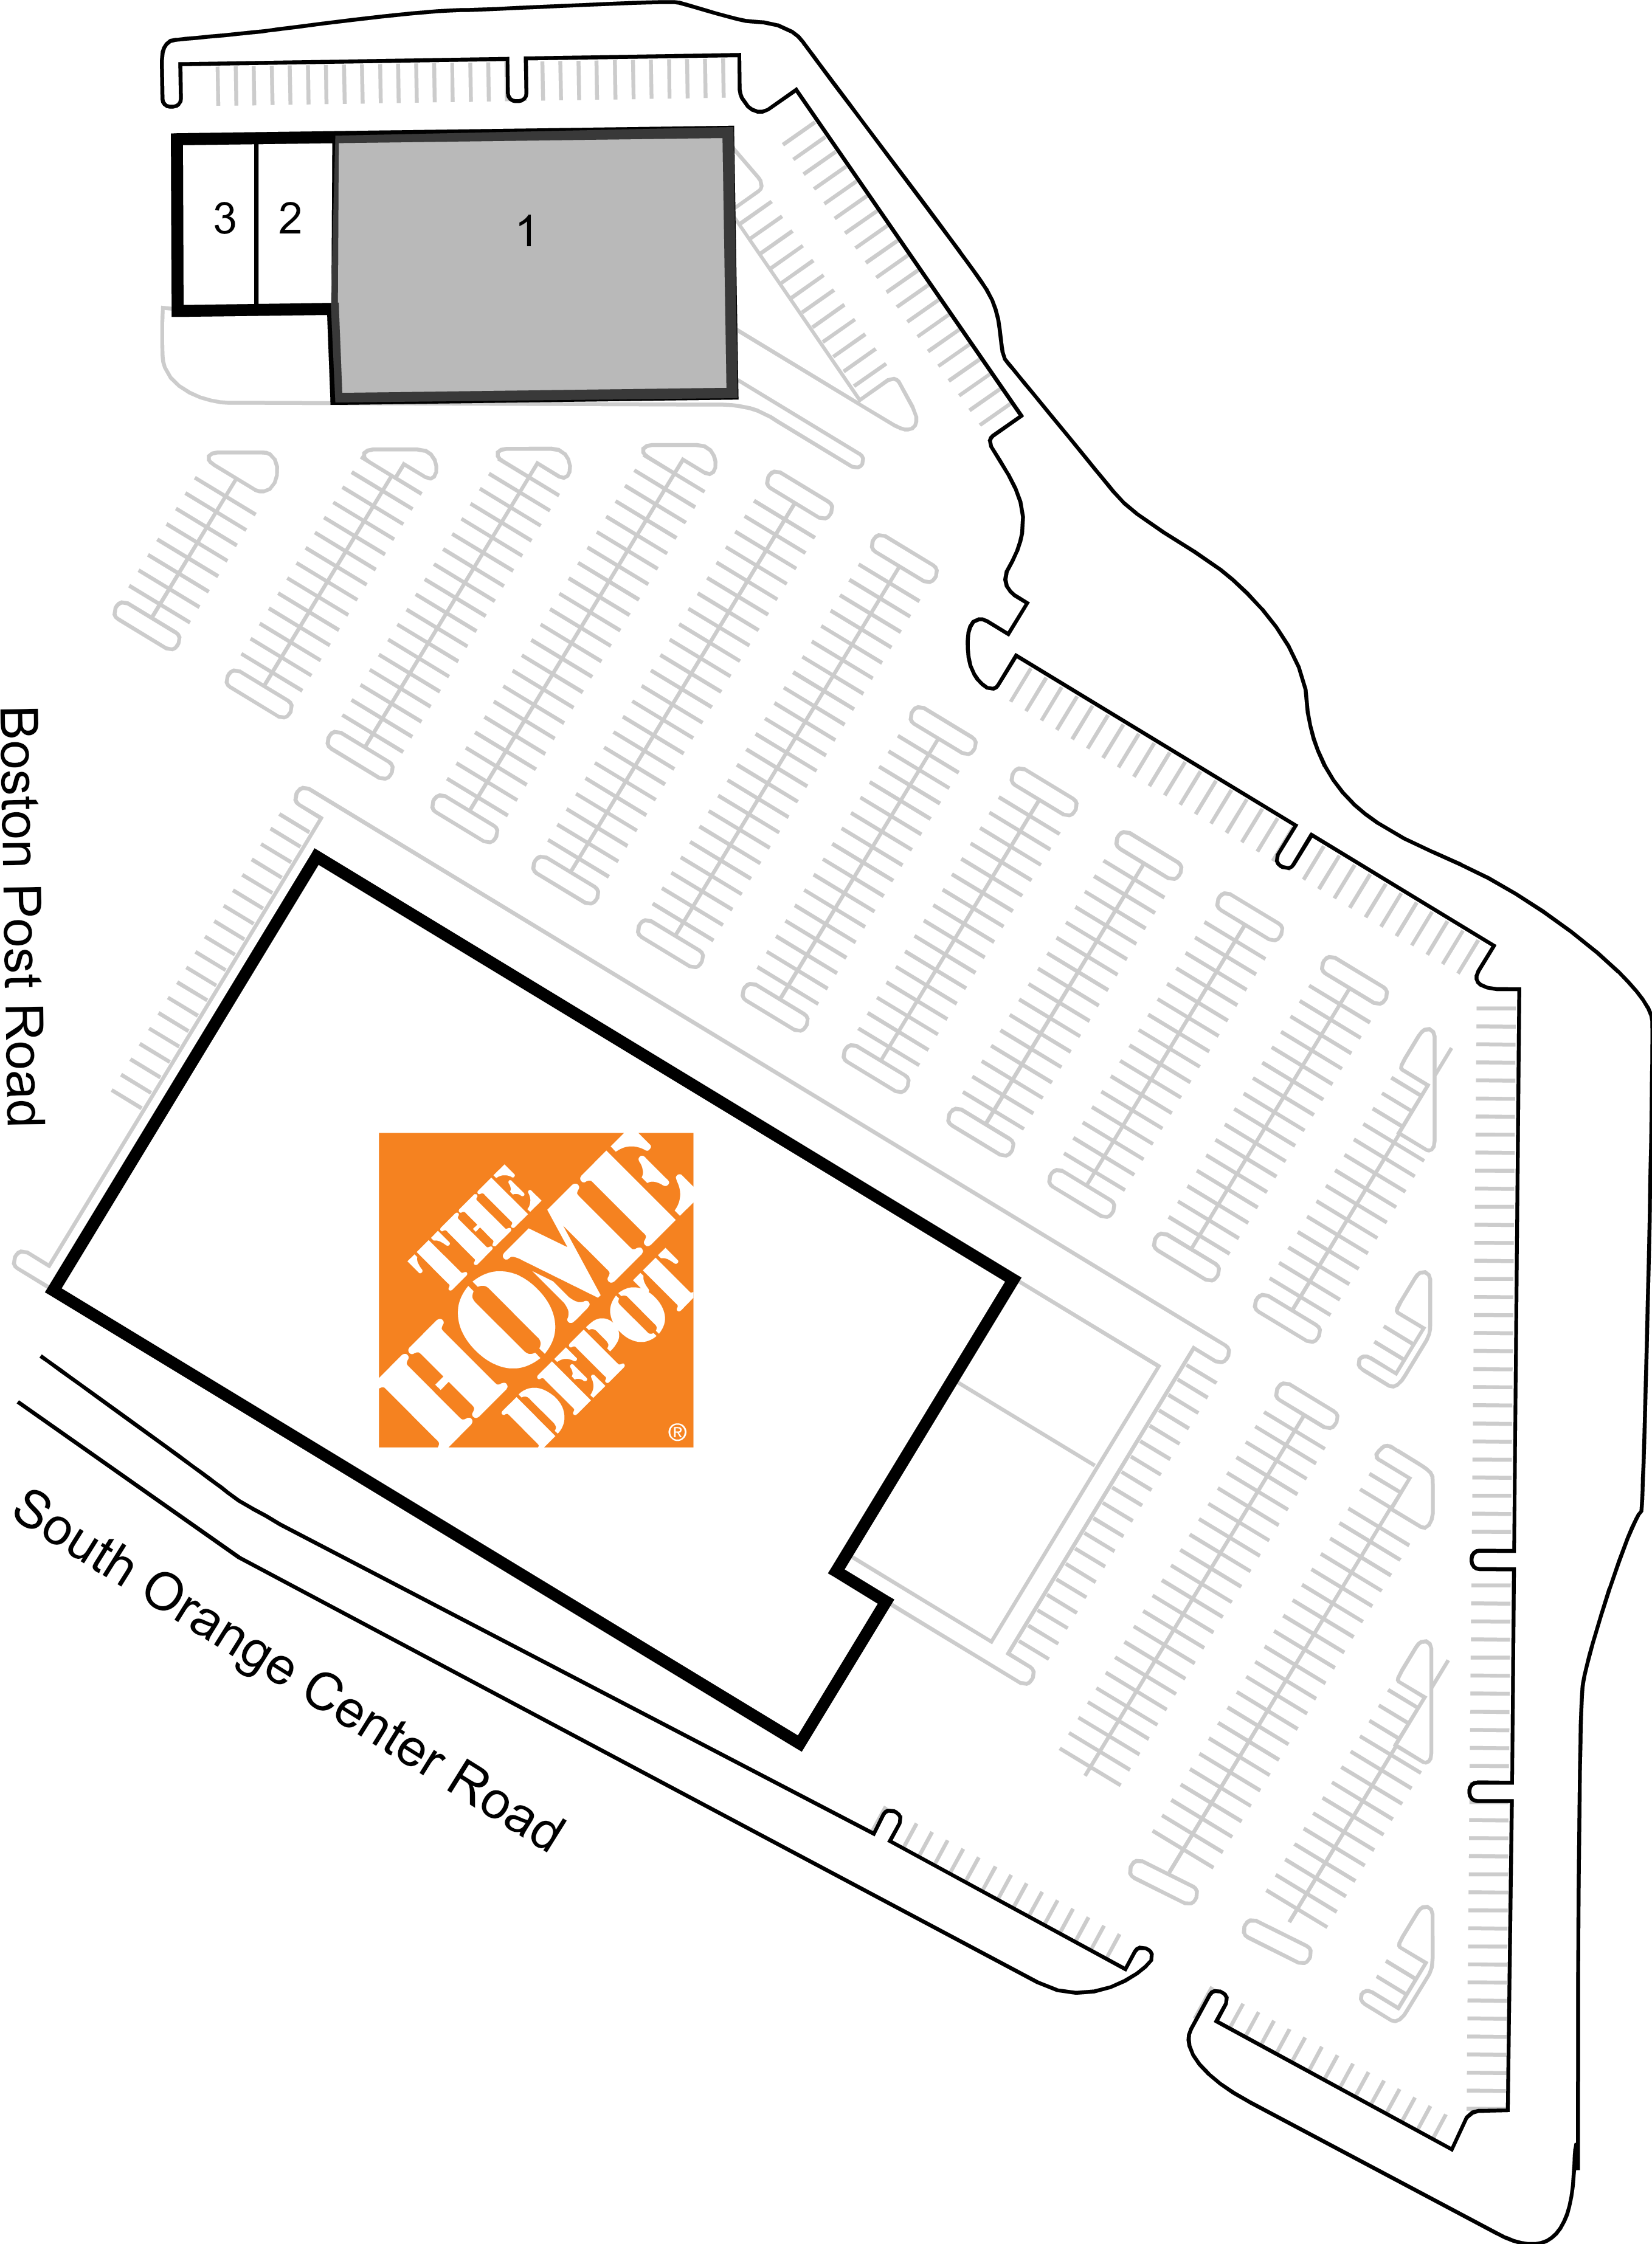 Home Depot Plaza Site Plans